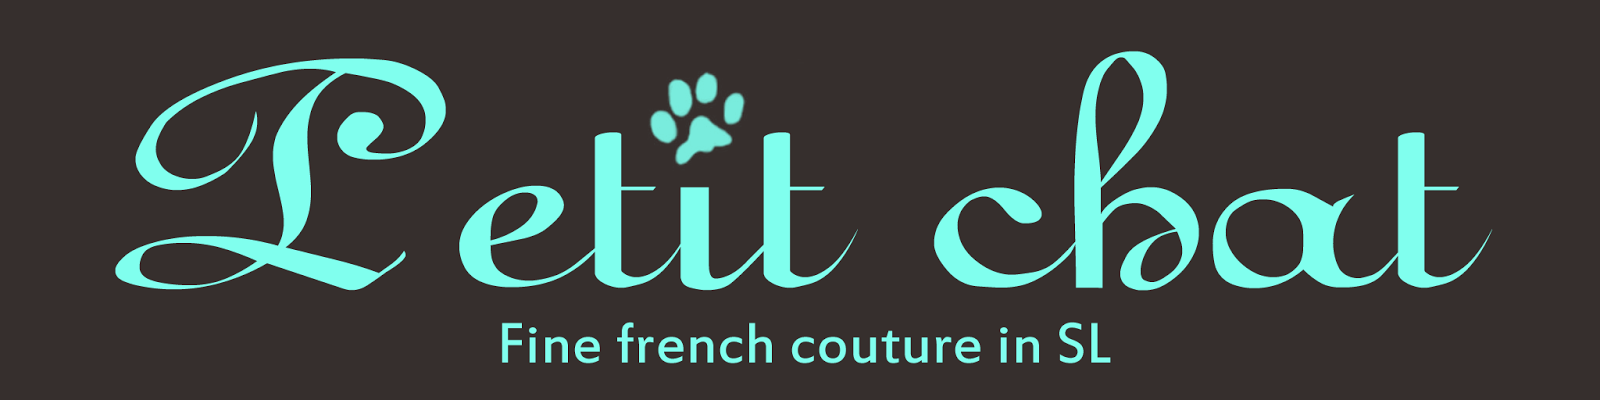 Petit Chat's fine french couture